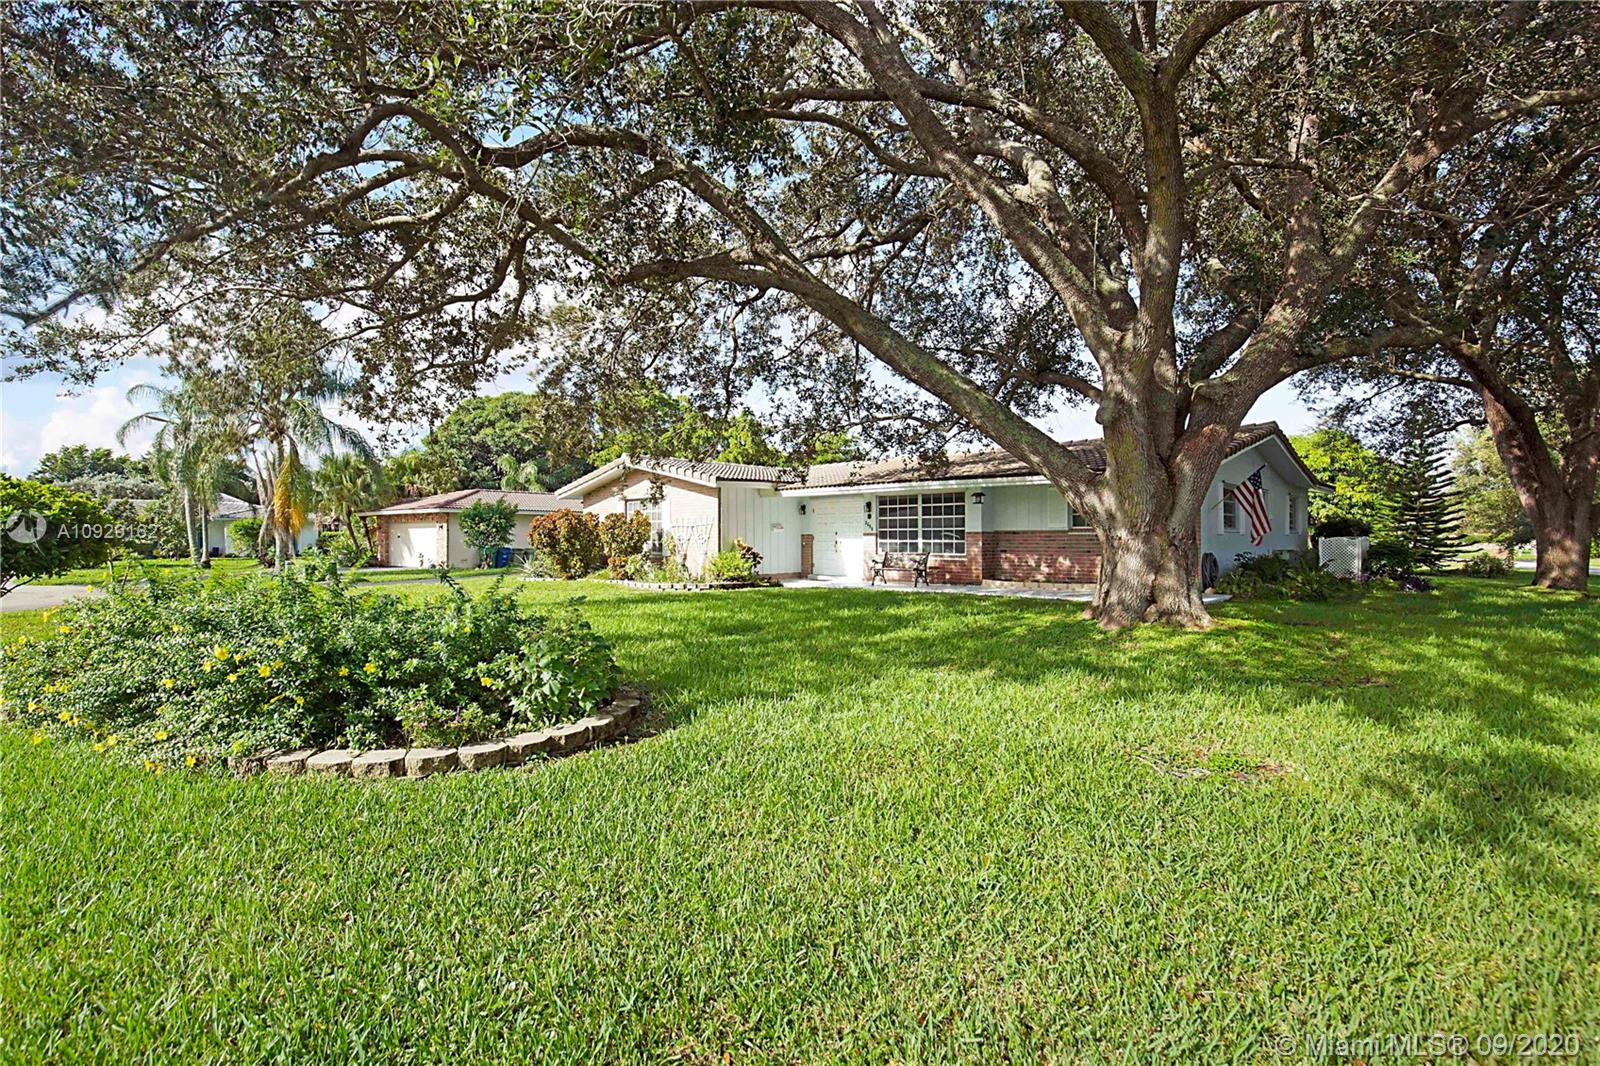 Opportunity to make this home your own in Coral Springs! Situated on a large 13,033 sqft lot and located on a cul-de-sac this 3 bedroom 2 bath home has a lot to offer. Long driveway w/ 2 car side load garage. Large front porch overlooking the expansive yard. Inside features a split floor plan. Master suite features walk in closet and en-suite. Generous bedrooms sizes. Florida room off the back of the home w/ a great use of additional space. Hurricane Shutters. NO HOA. Watch the video tour of the home: